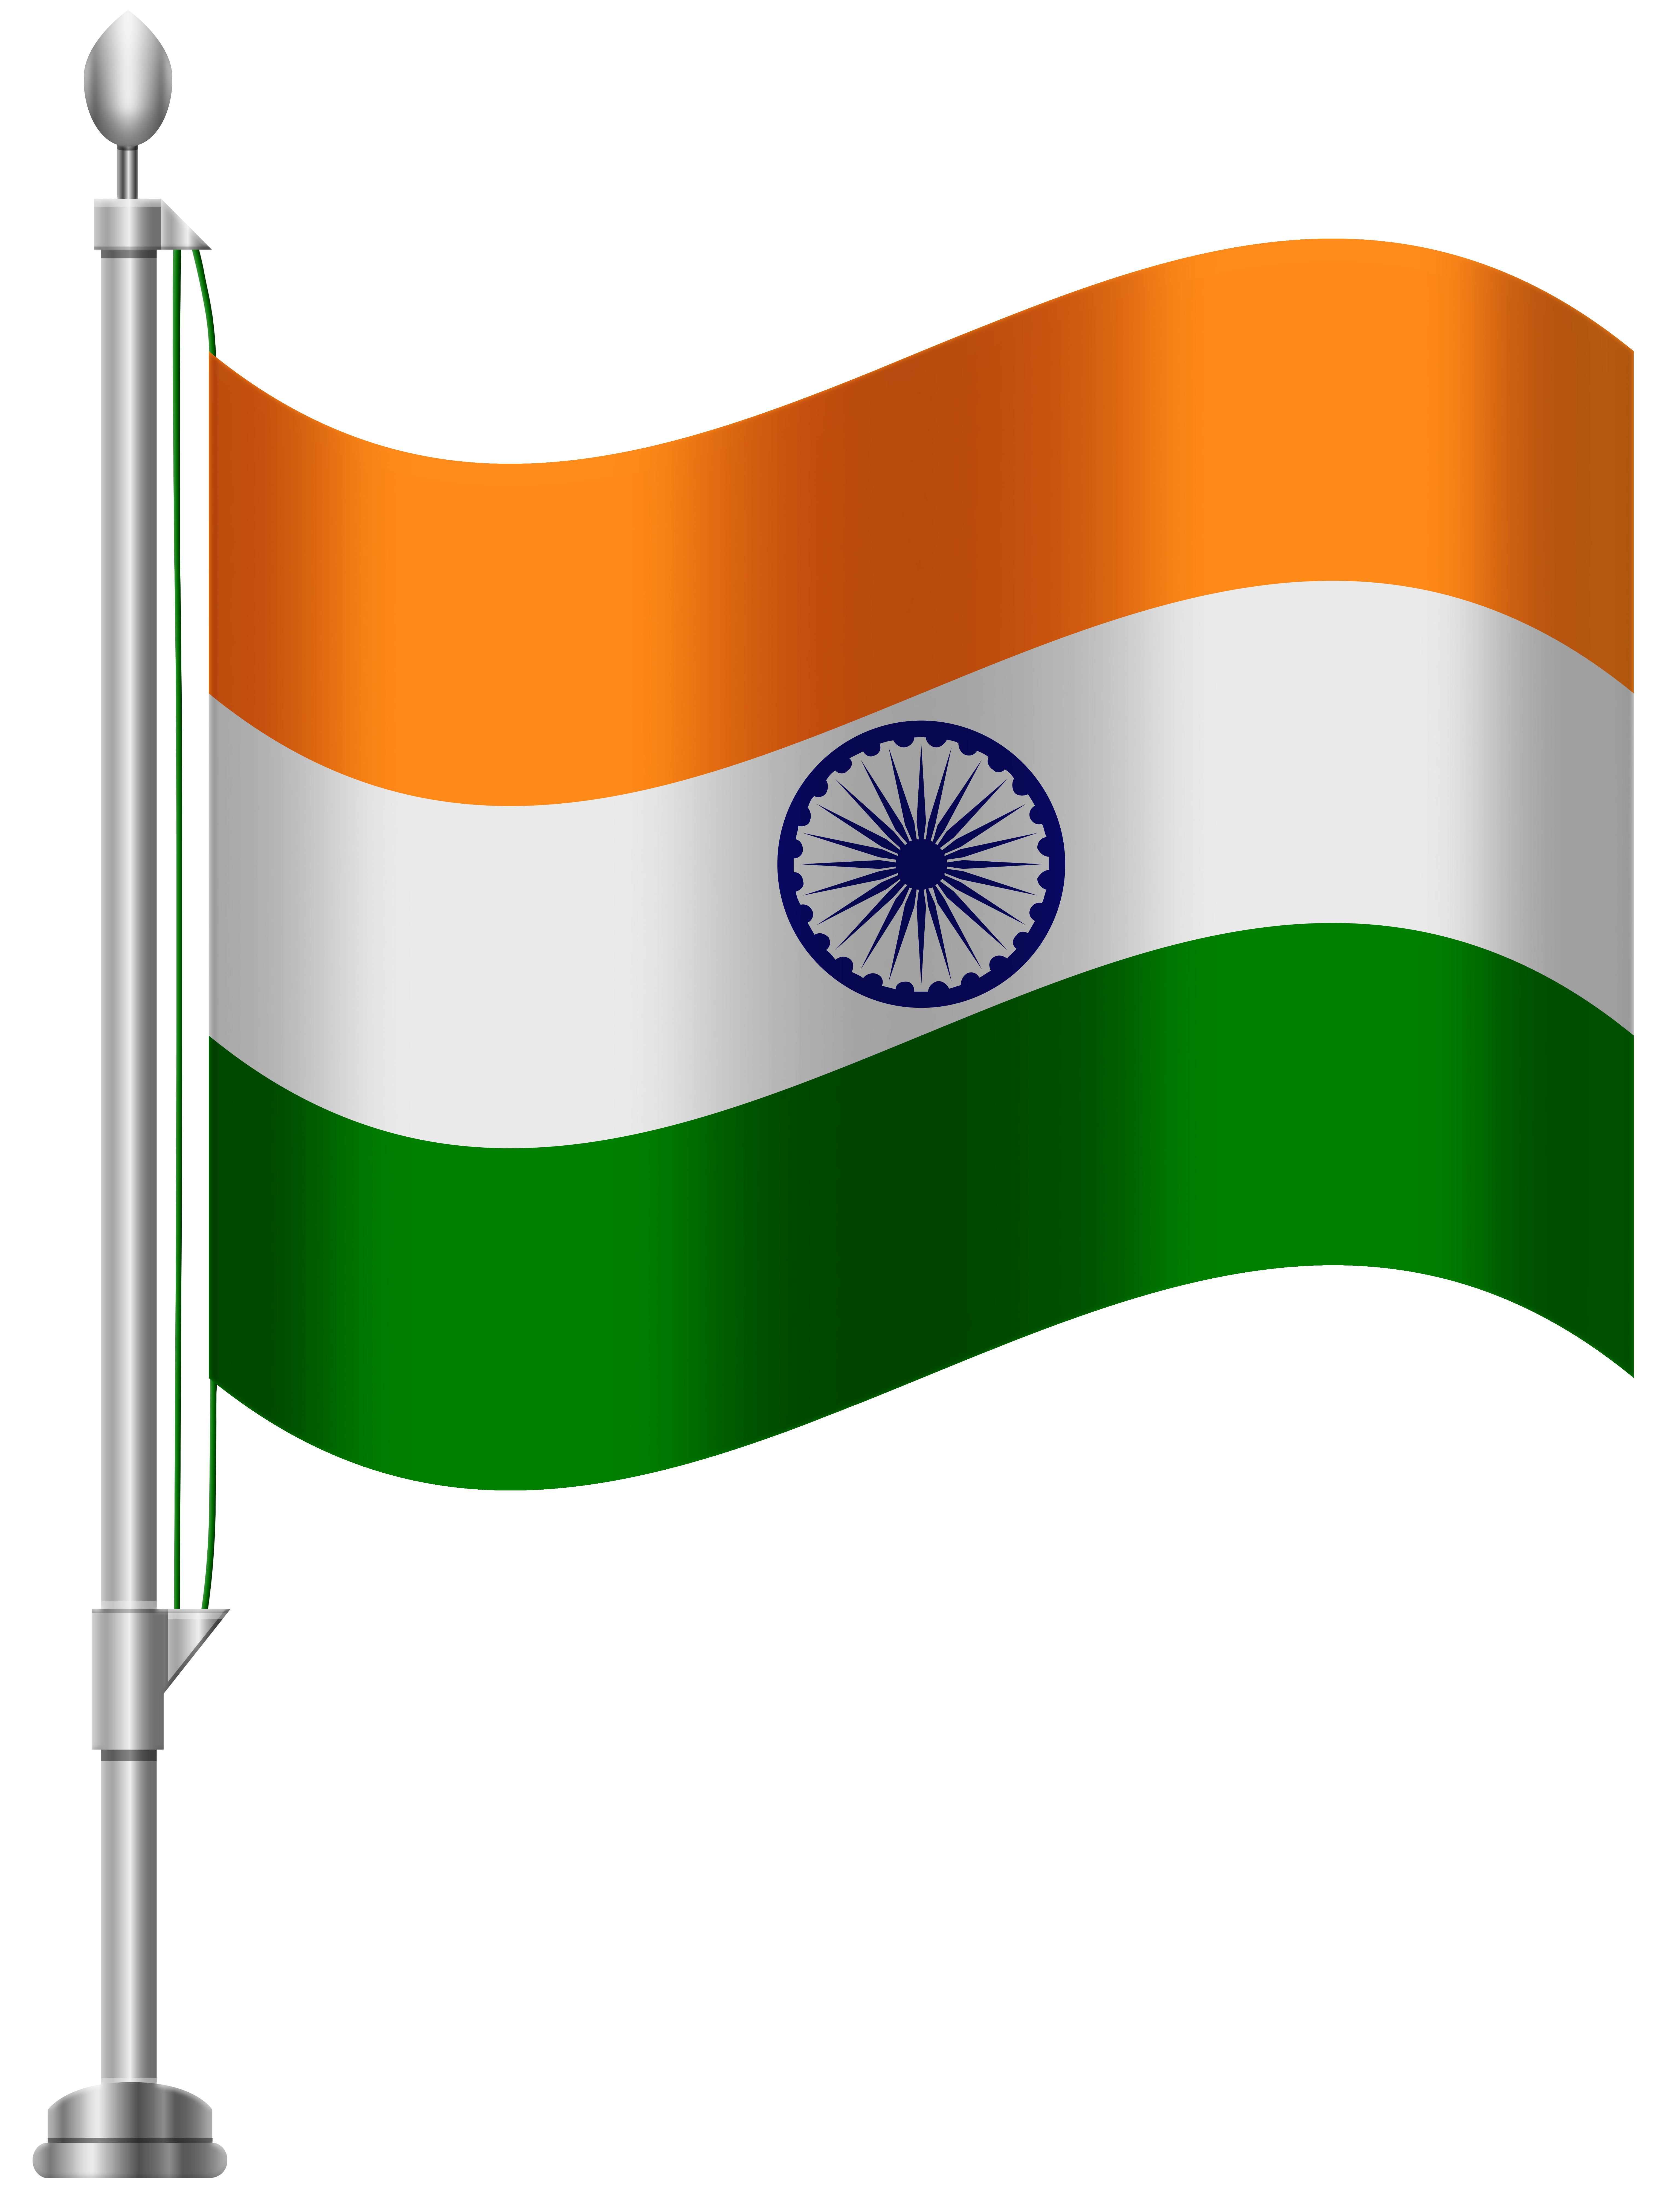 Indian flag clipart image transparent library India Flag PNG Clip Art - Best WEB Clipart image transparent library